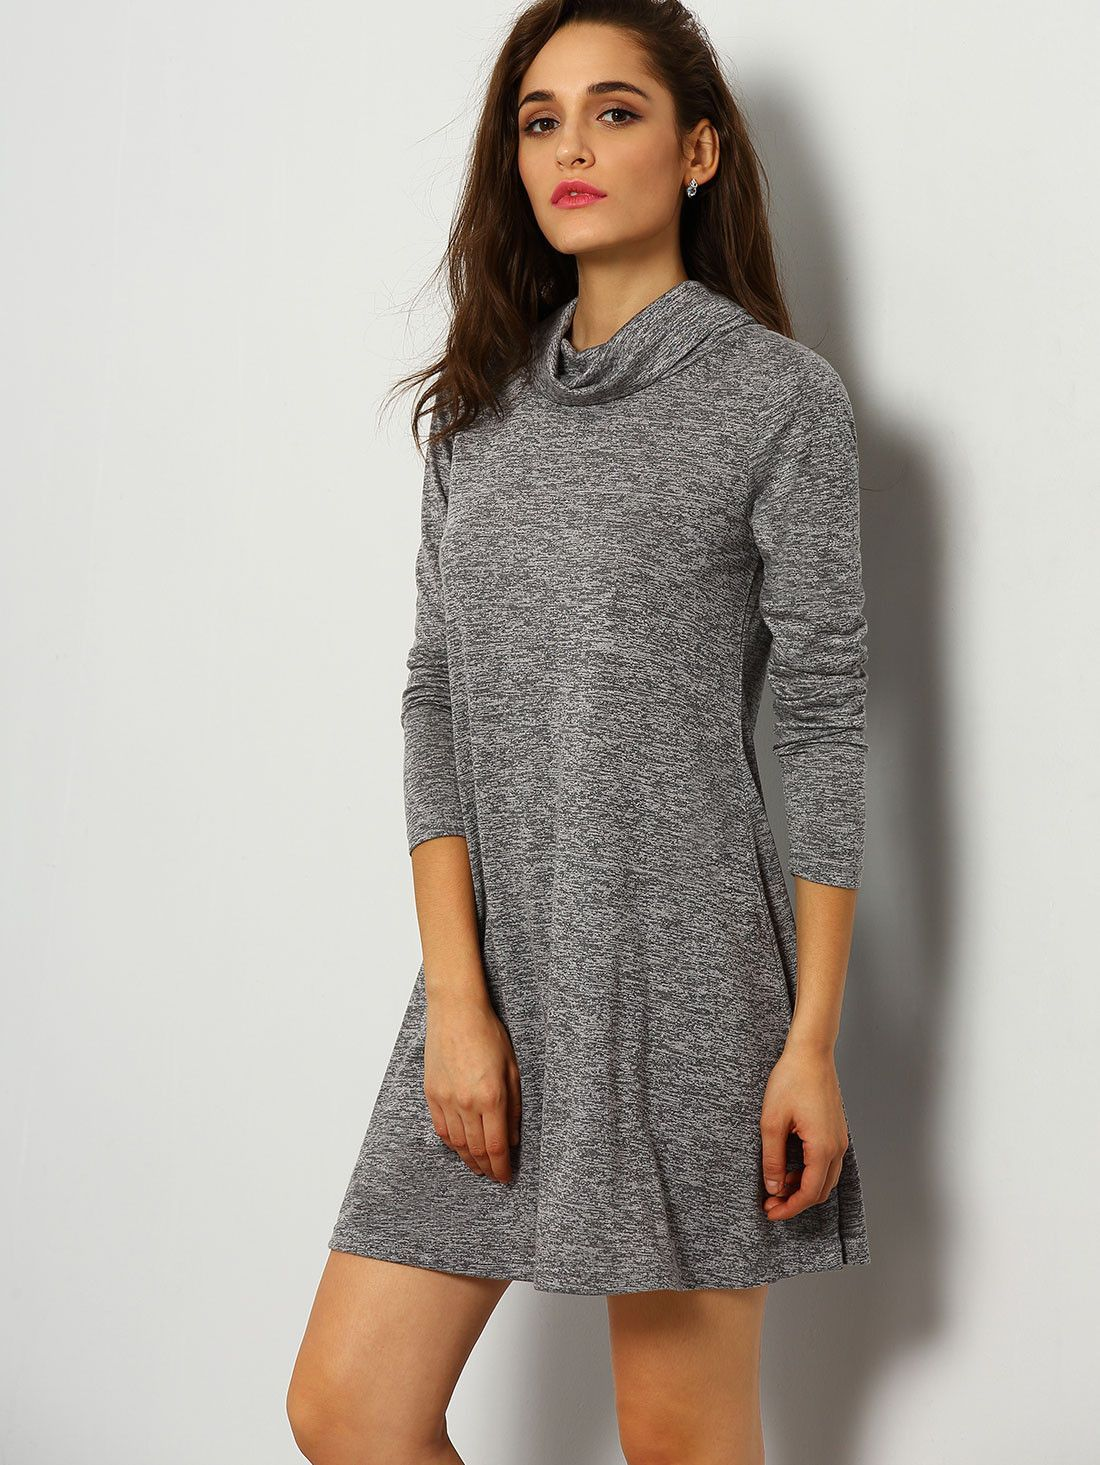 Fabric :Fabric has some stretch Season :Fall Type :Dress Pattern Type :Plain Color :Grey Dresses Length :Short Style :Basic Material :Jersey Neckline :High Neck Silhouette :Shift Bust(cm) :XS:87cm,S:9